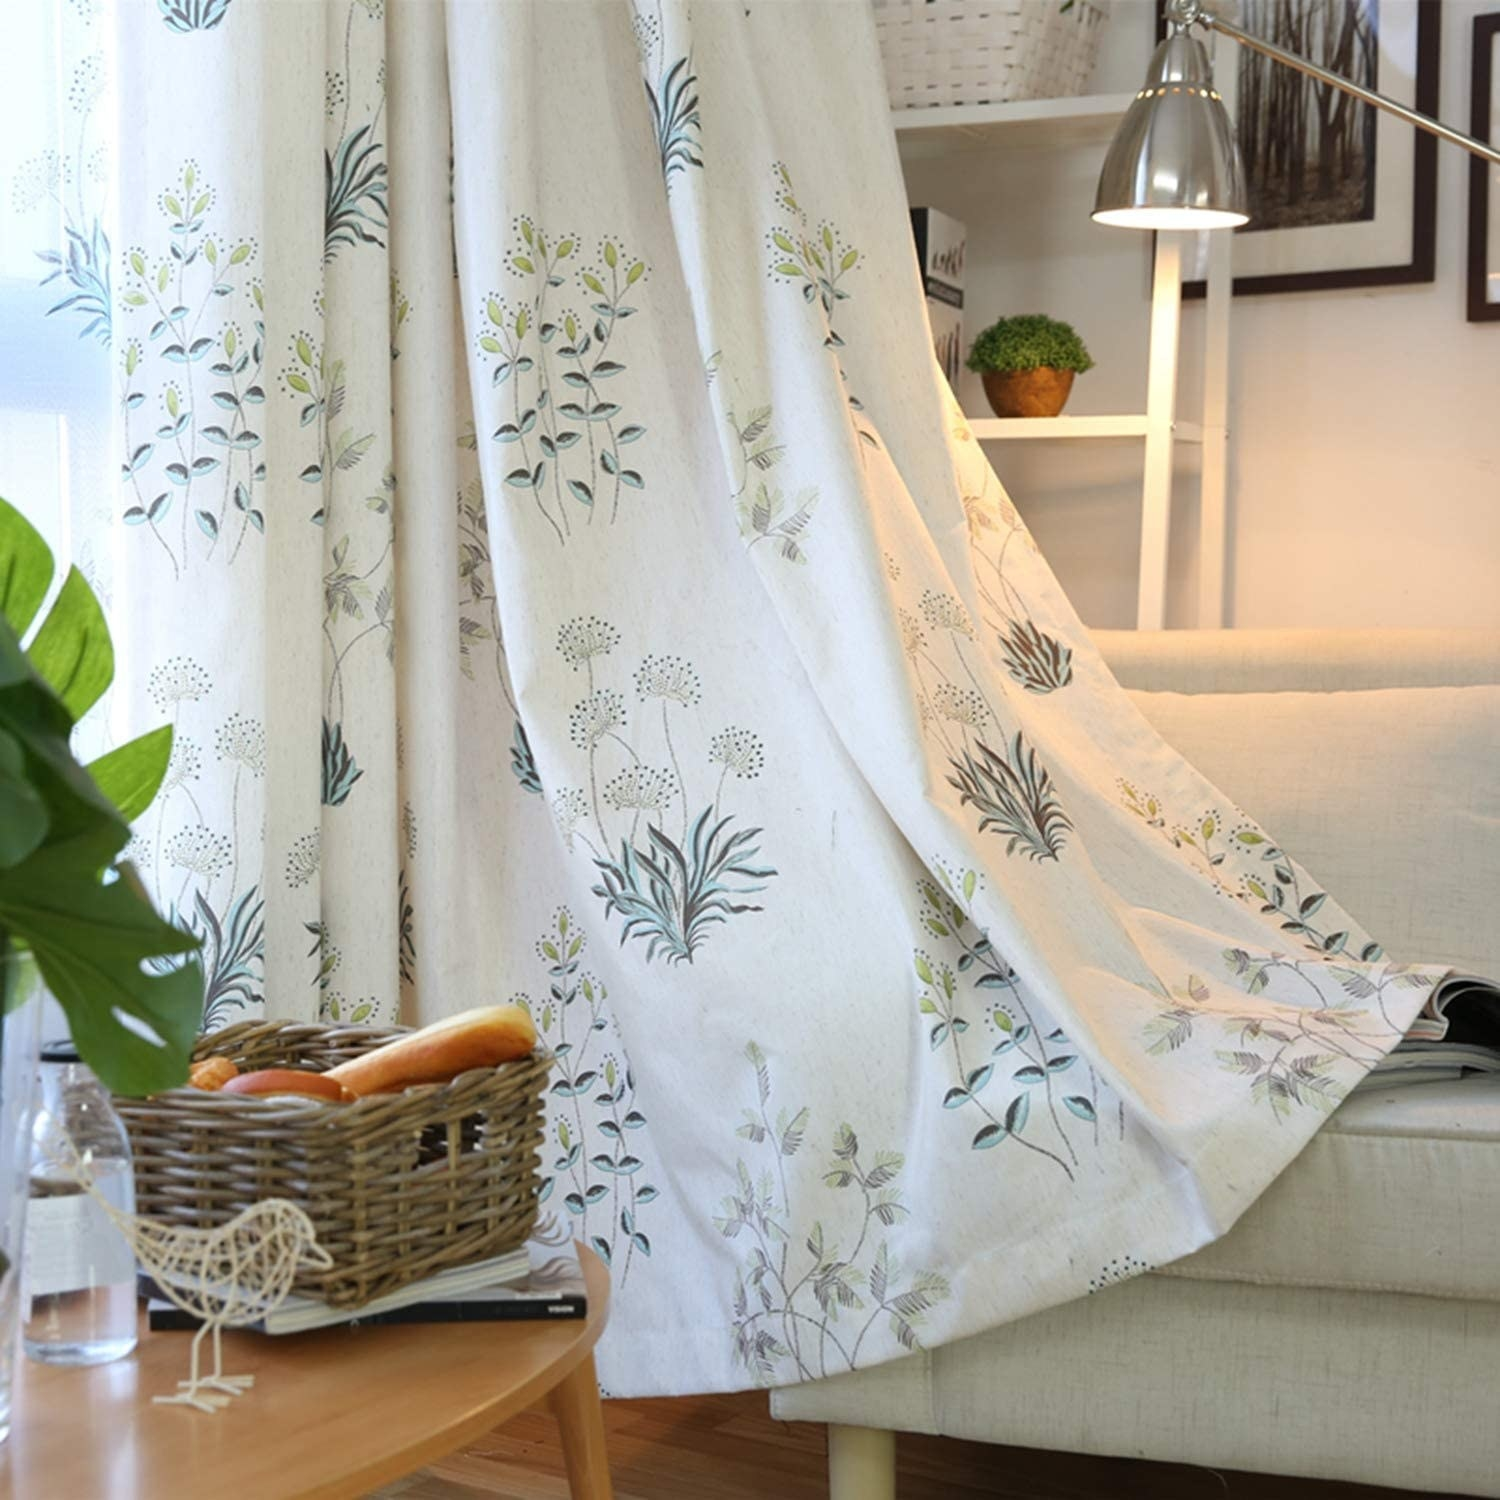 White curtains with subtly colored flowers throughout